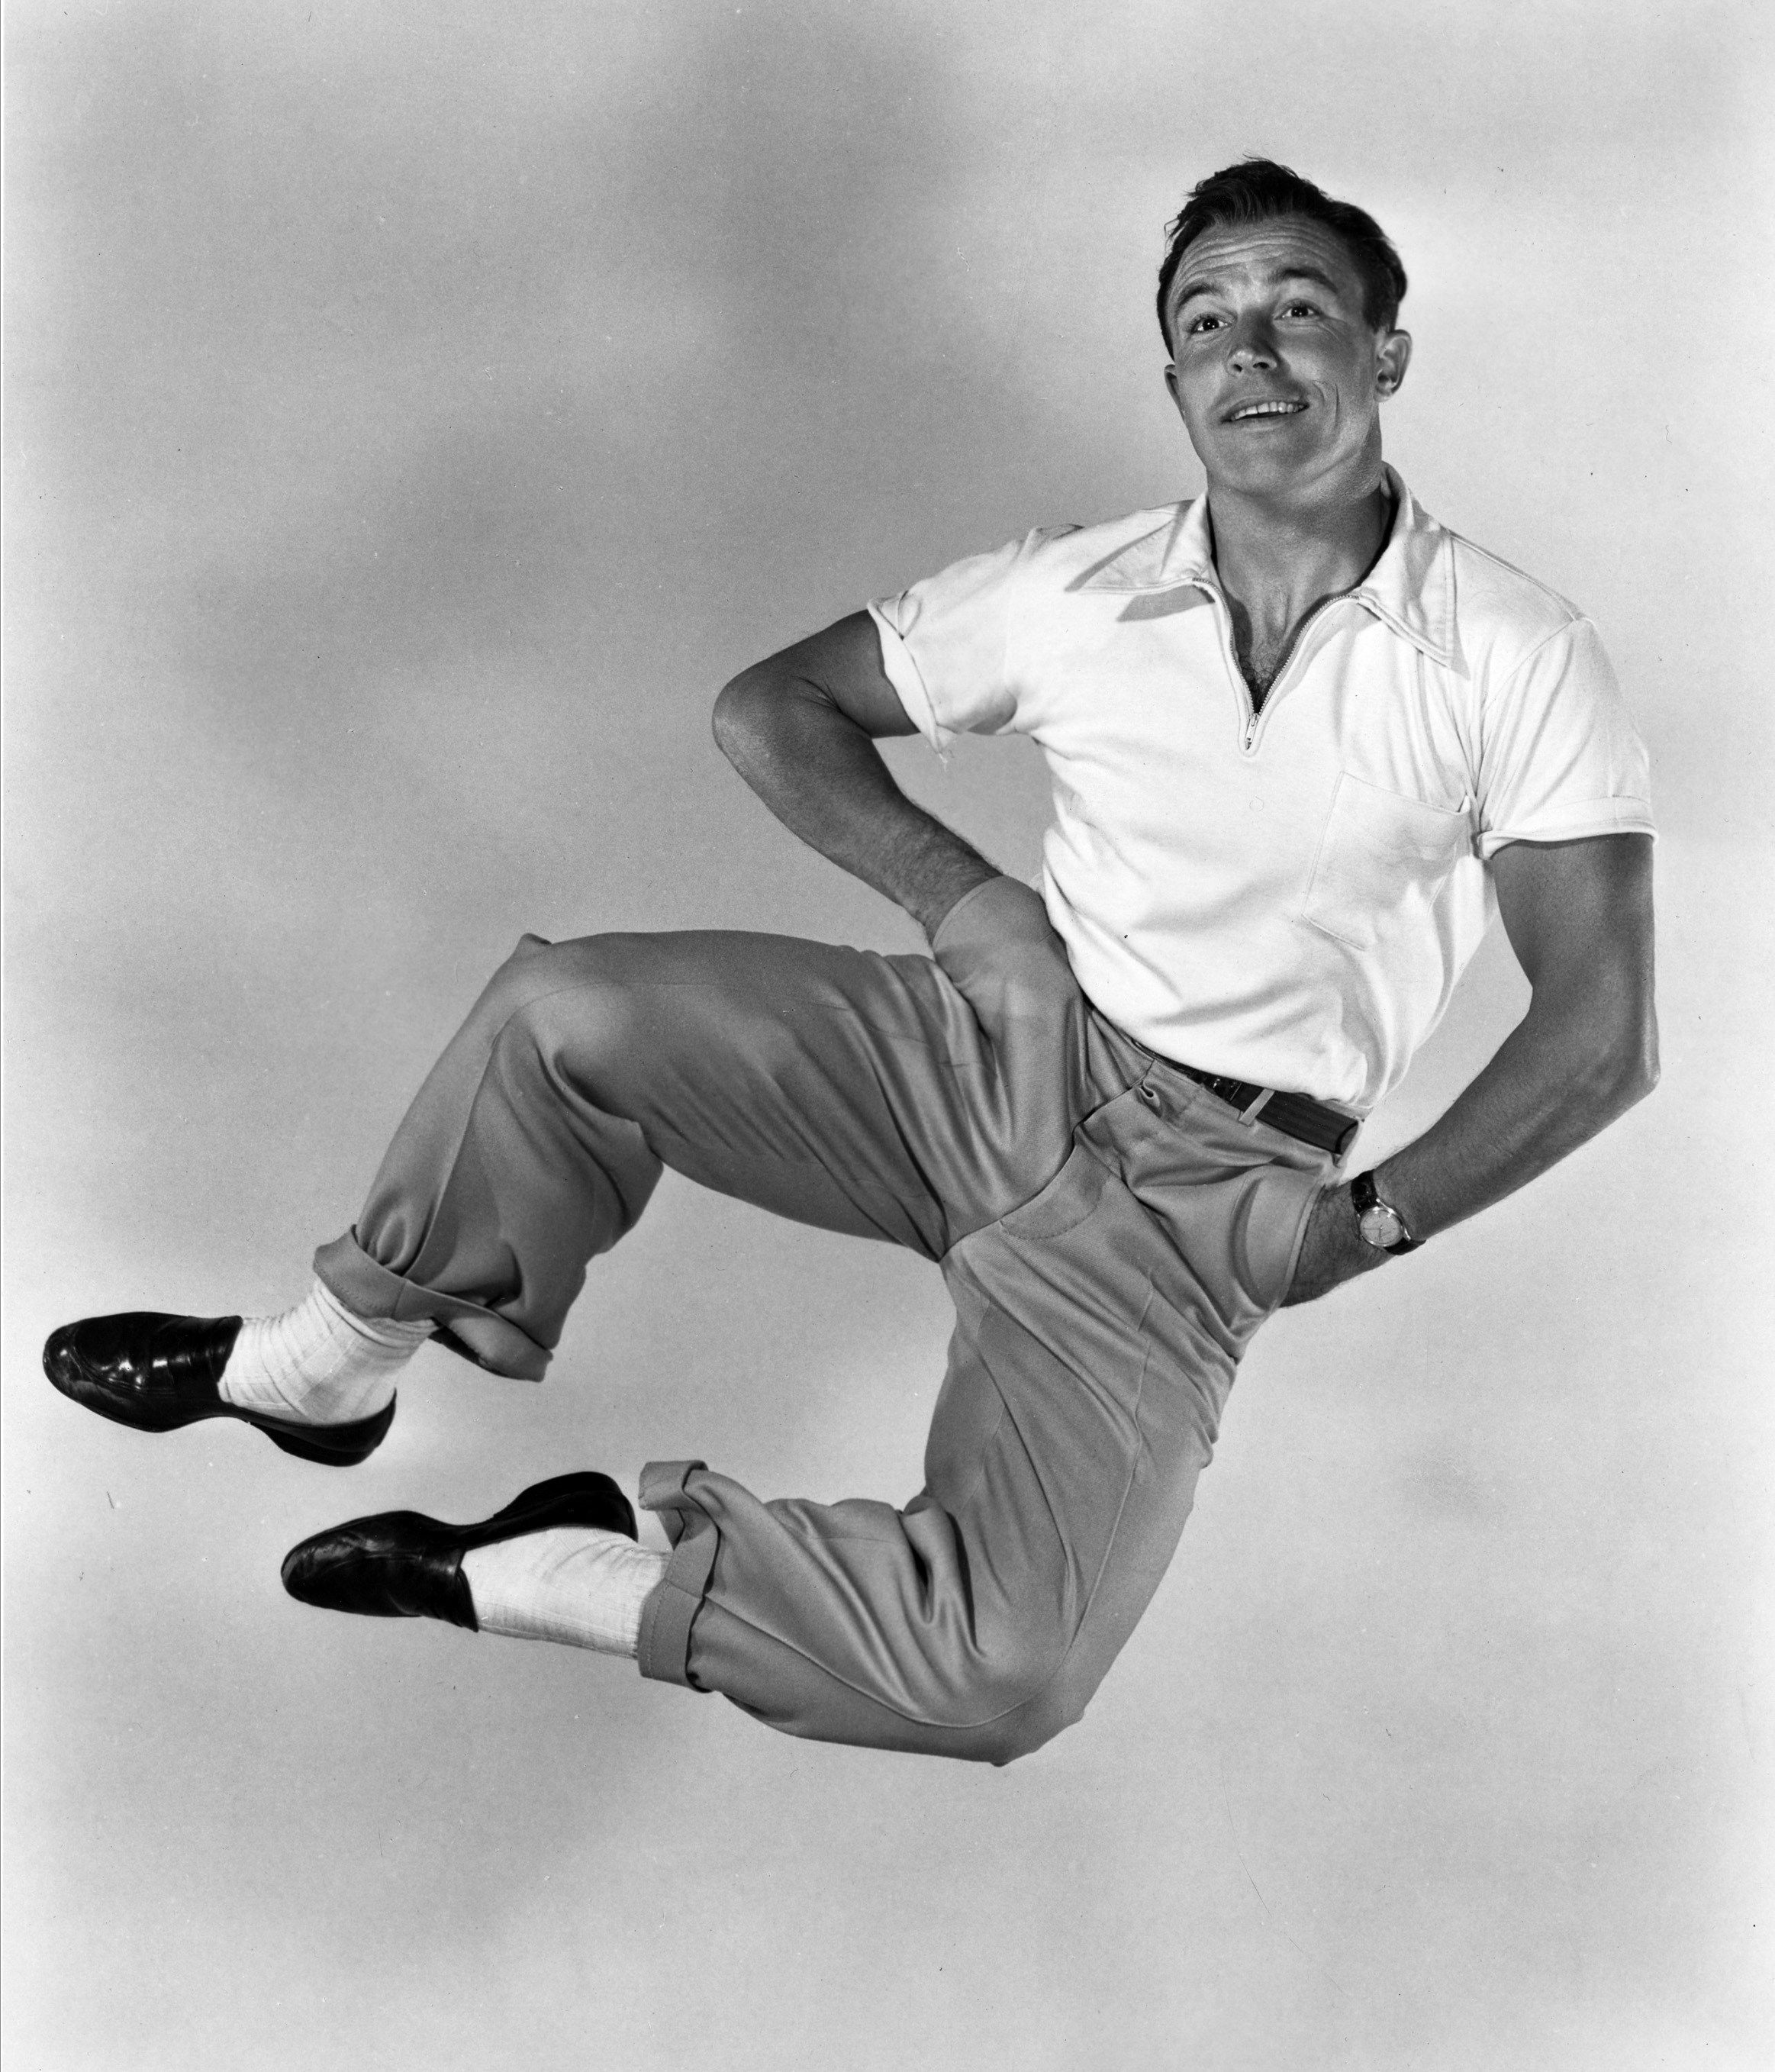 Academy To Fete Gene Kelly With Centennial Tribute (With